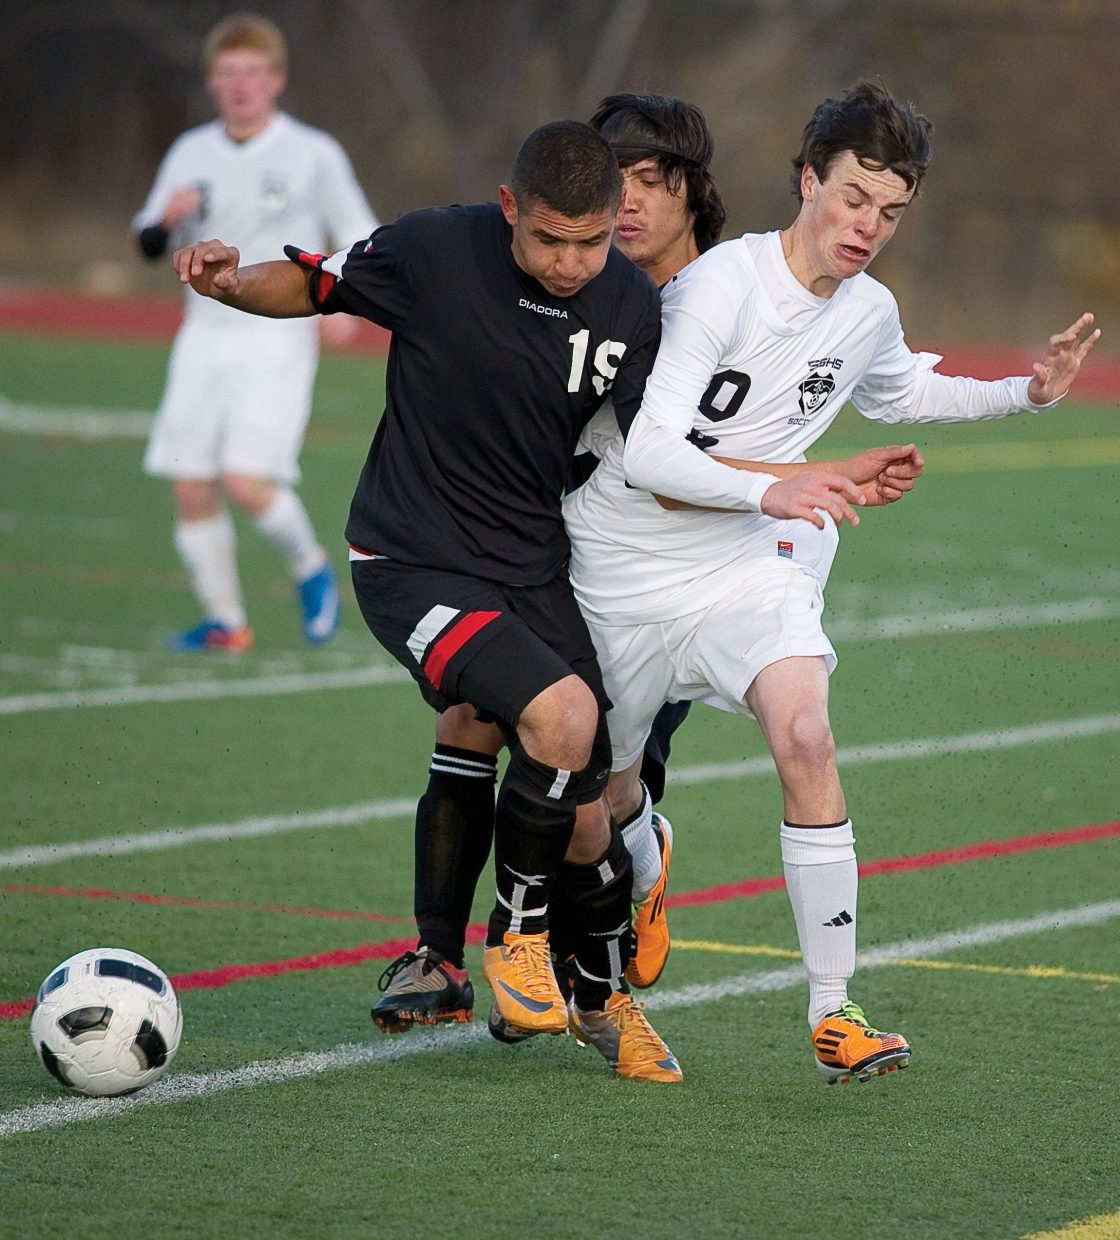 Steamboat Springs John Vande Velde collides with Eagle Valley's Jose Gonzalez while attempting to move the ball along the sideline in the first half of Tuesday night's game at Gardner Field in Steamboat Springs. The Sailors won, 7-1.